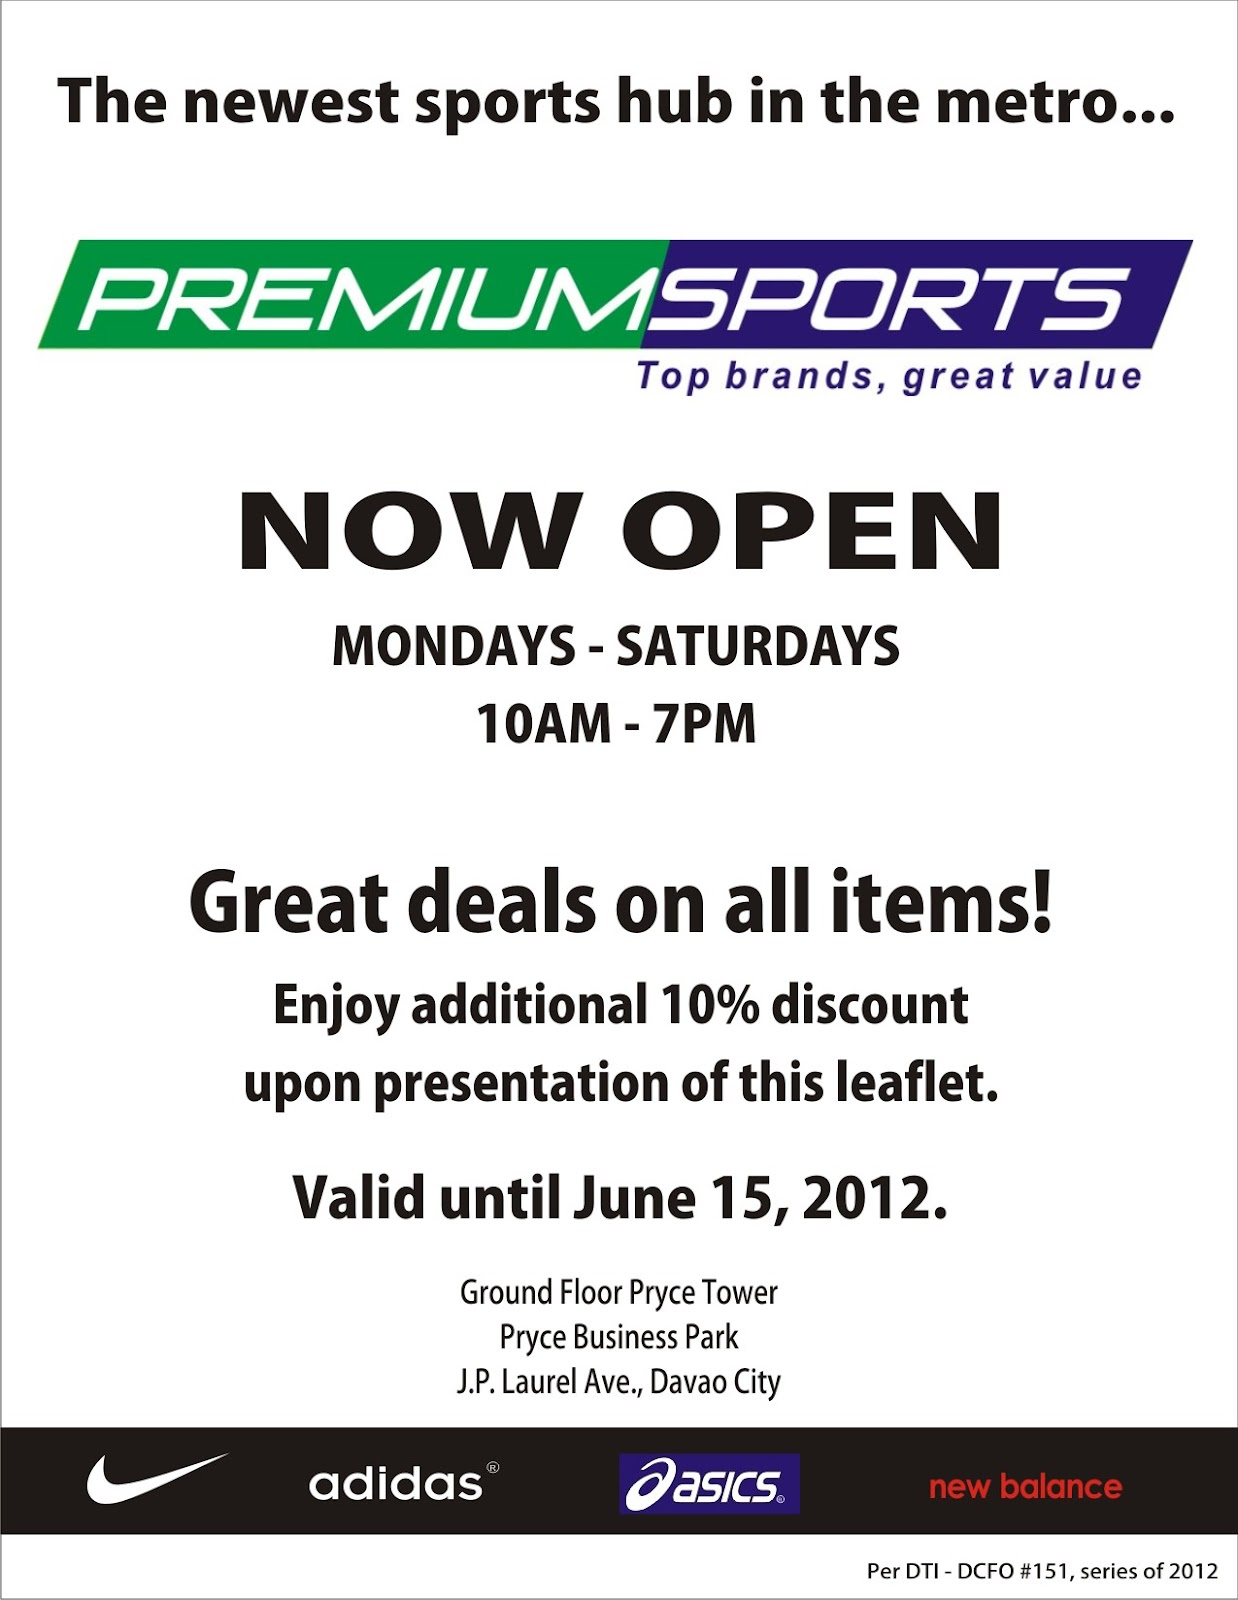 premium sports all items are discounted up to 70 off enjoy additional 10 discount upon presentation of this leaflet till june 152012